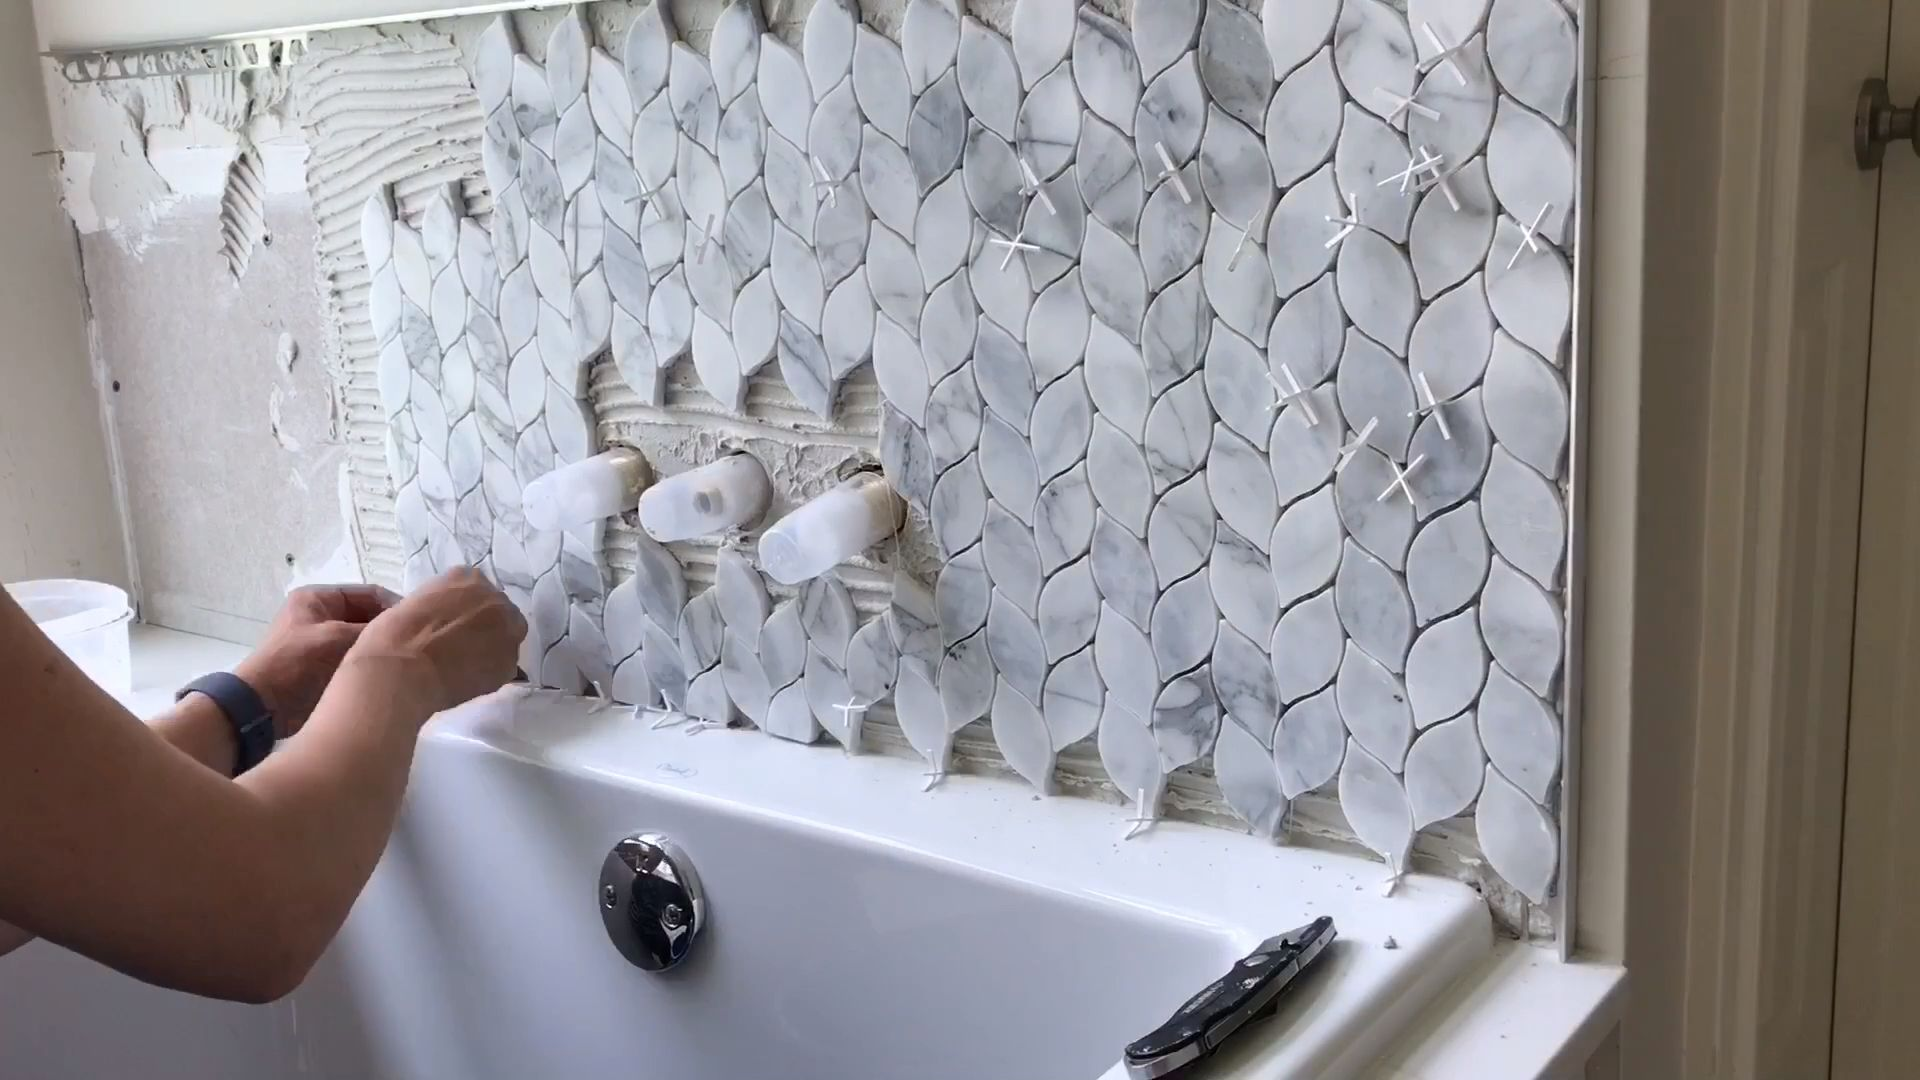 Just a quick look at the Marble Mosaic tile I just installed in our Master Bathroom. Click to see my install tips and more pictures from my bathroom remodel. 😊 #abbottsathome #bathroomtiles #marbletiles #marblebathroom #mosaictiles #tiling #bathroomremodel